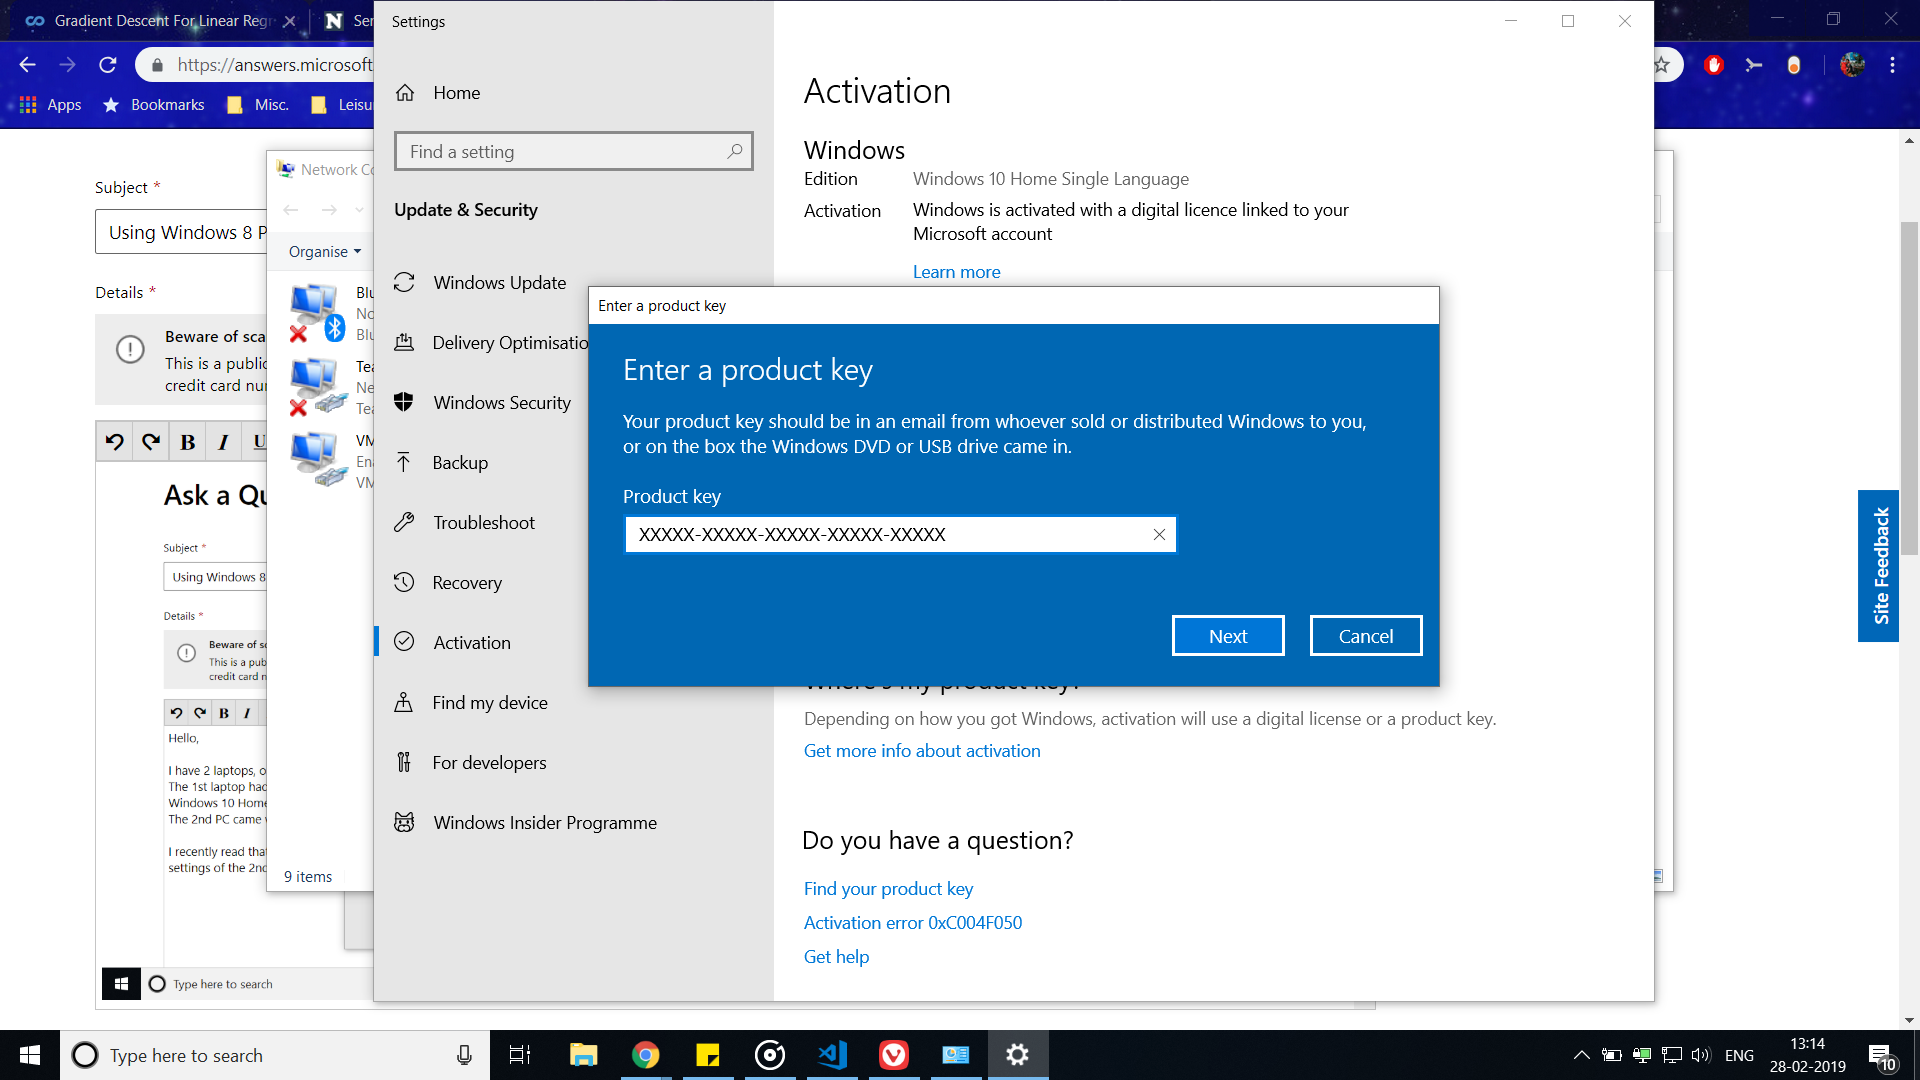 Using Windows 8 Pro key to Upgrade to Windows 10 Pro from Home 2872c9f3-4a0c-4c97-8bb6-371400646fce?upload=true.png